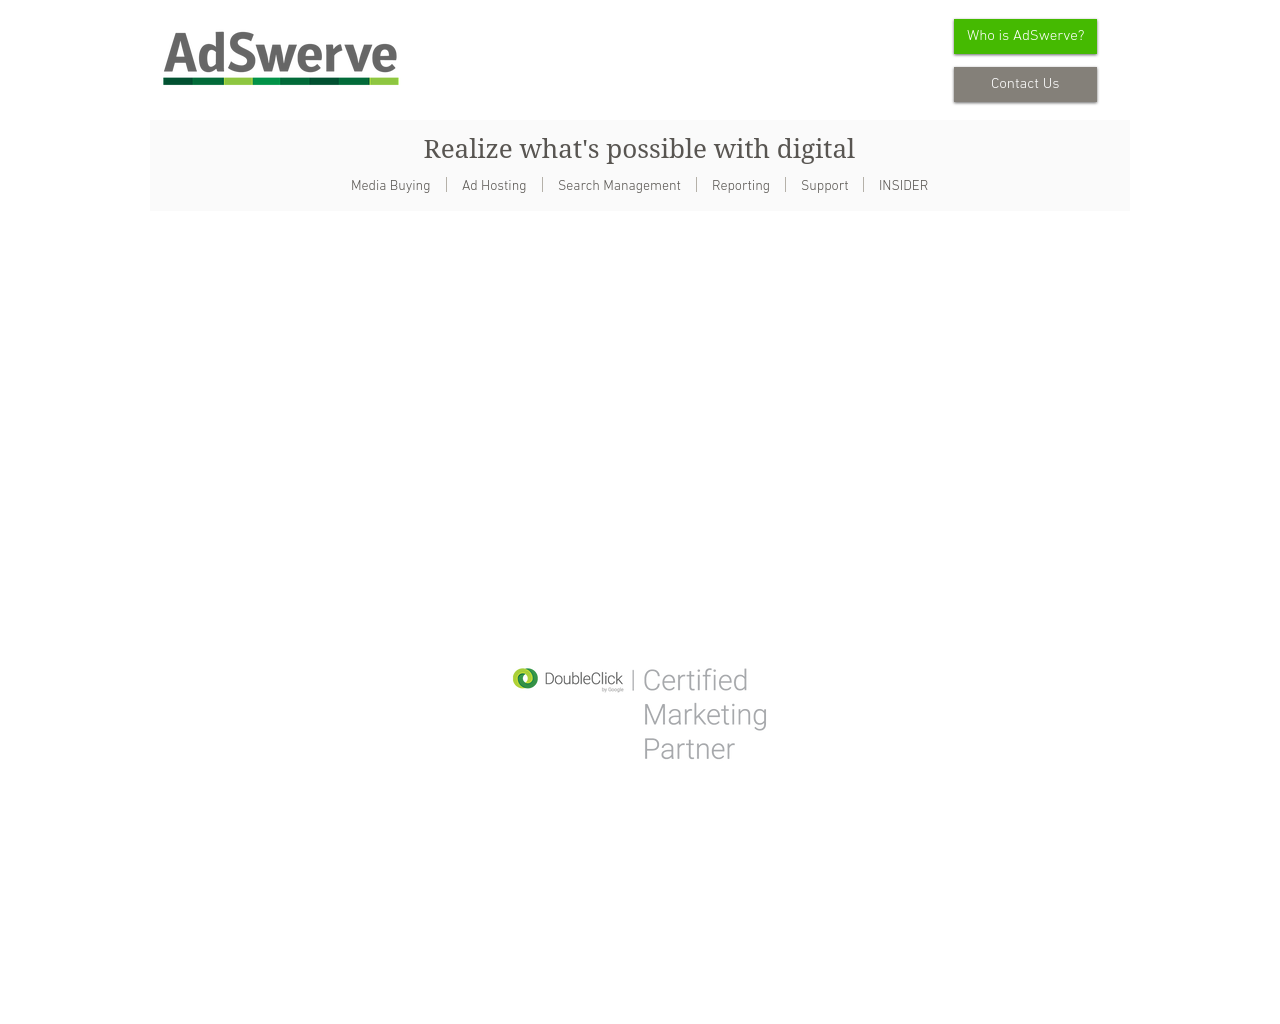 AdSwerve-Advertising-Reviews-Pricing